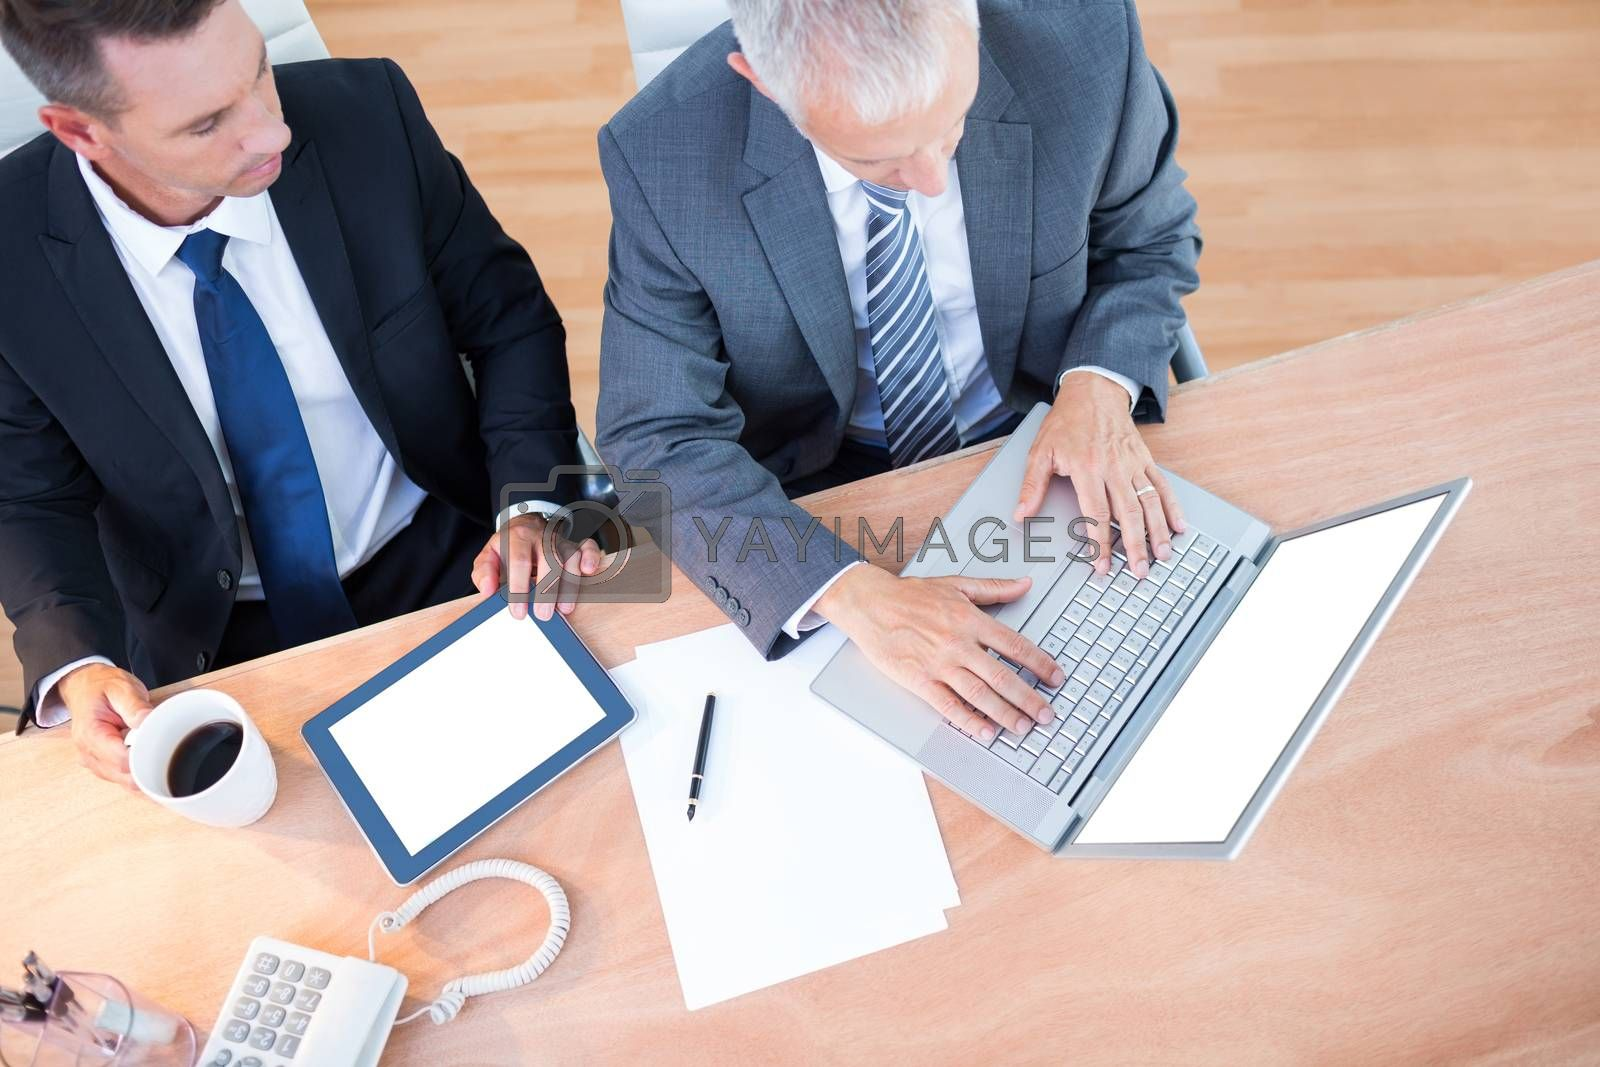 Royalty free image of High view of businessmen working together on laptop by Wavebreakmedia